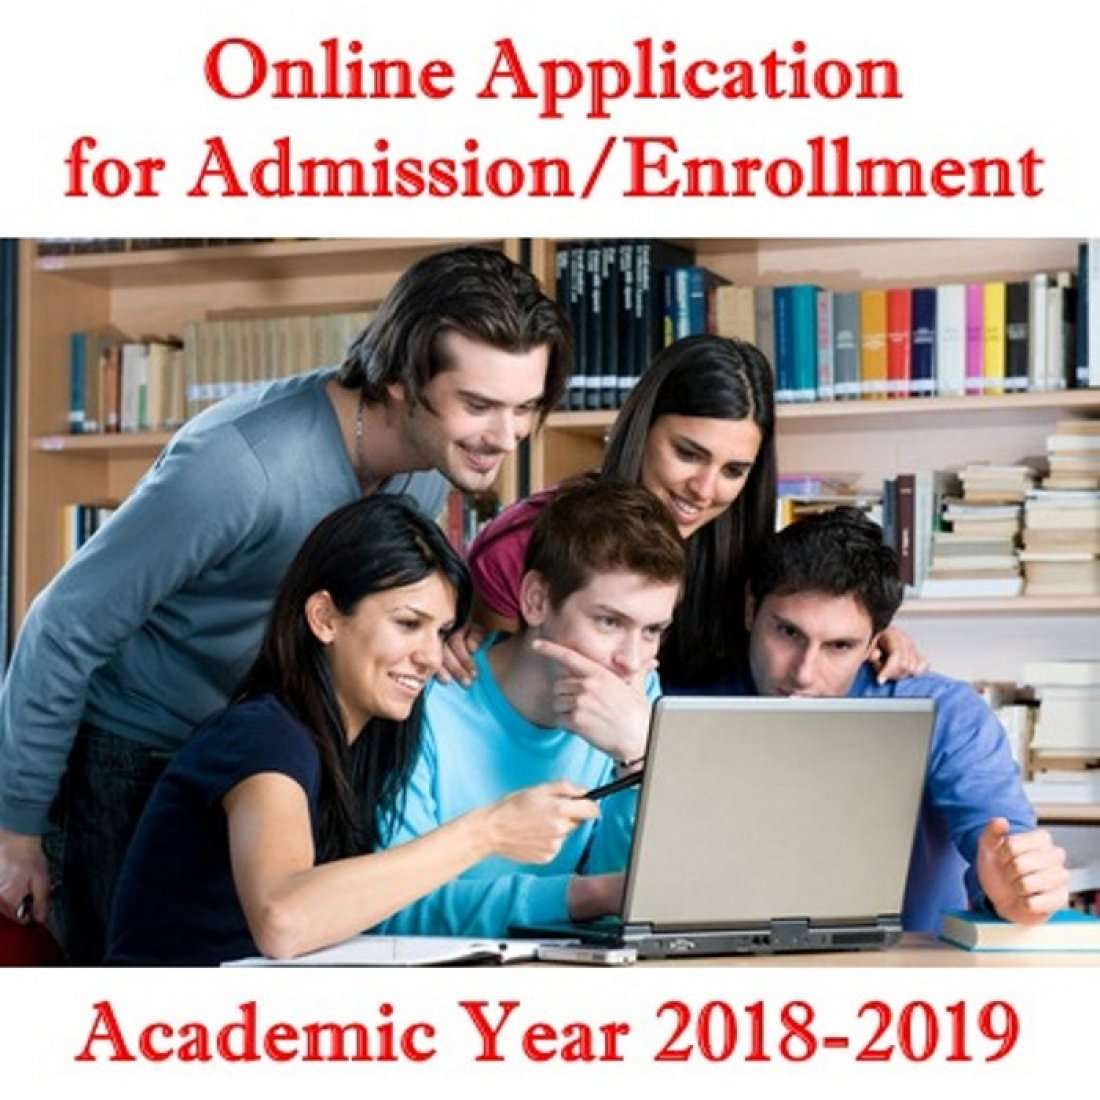 Online Application for Admission (2018-2019)